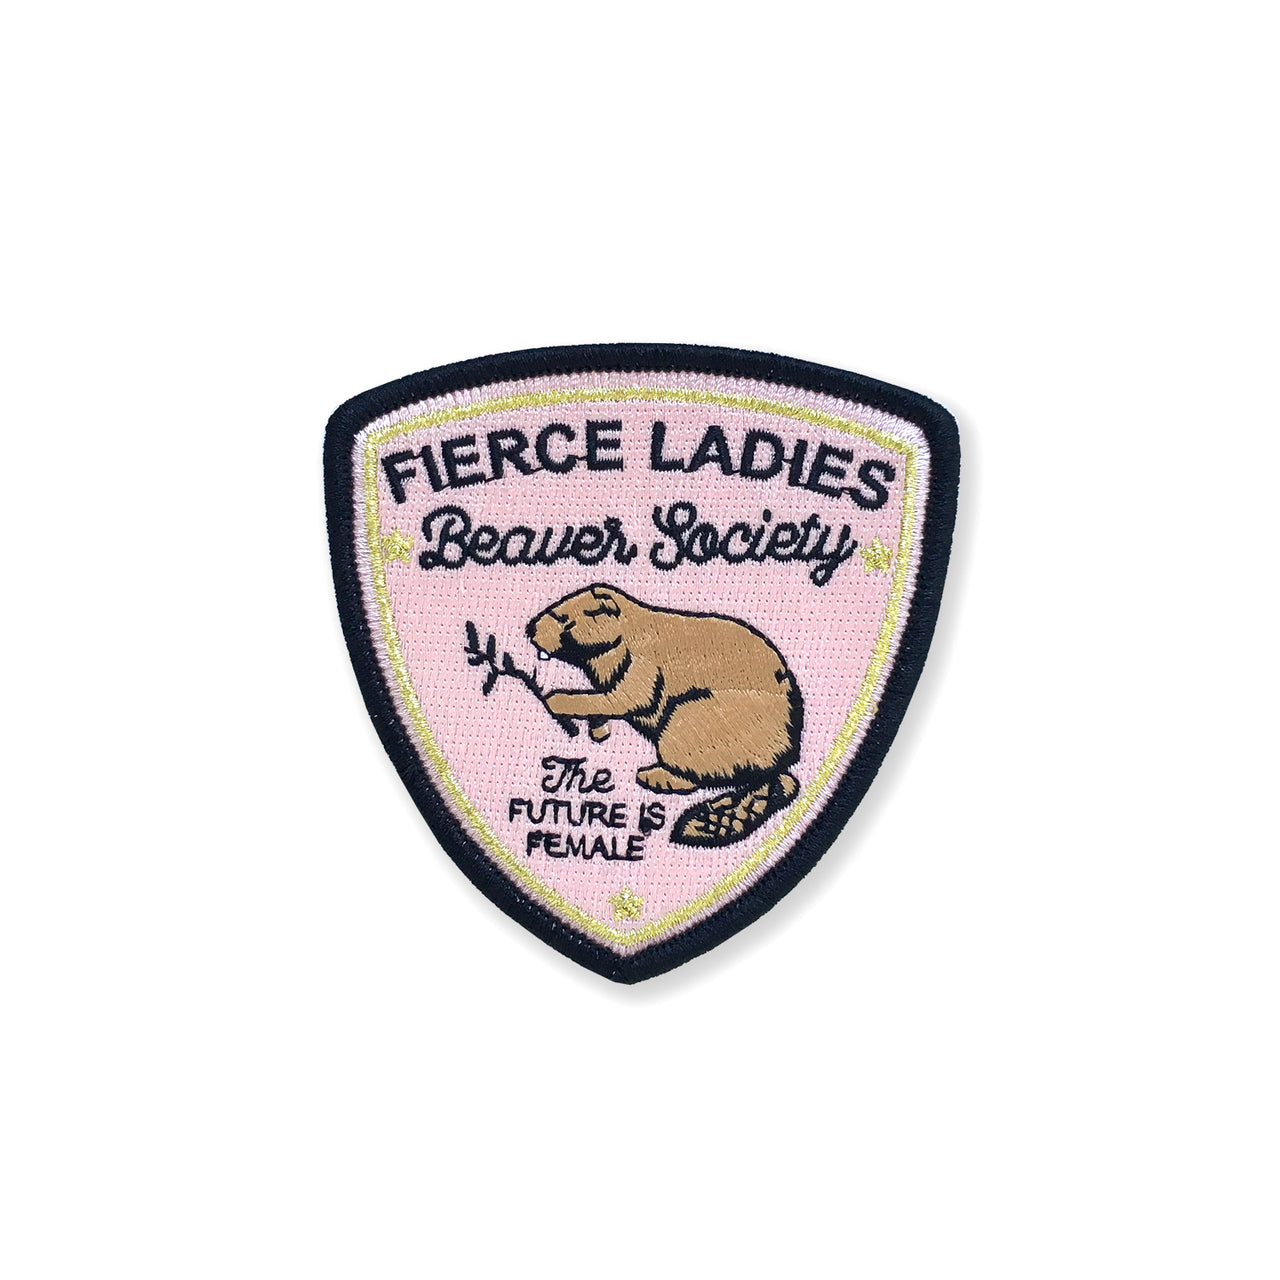 Fierce Ladies Beaver Society Embroidered Patch